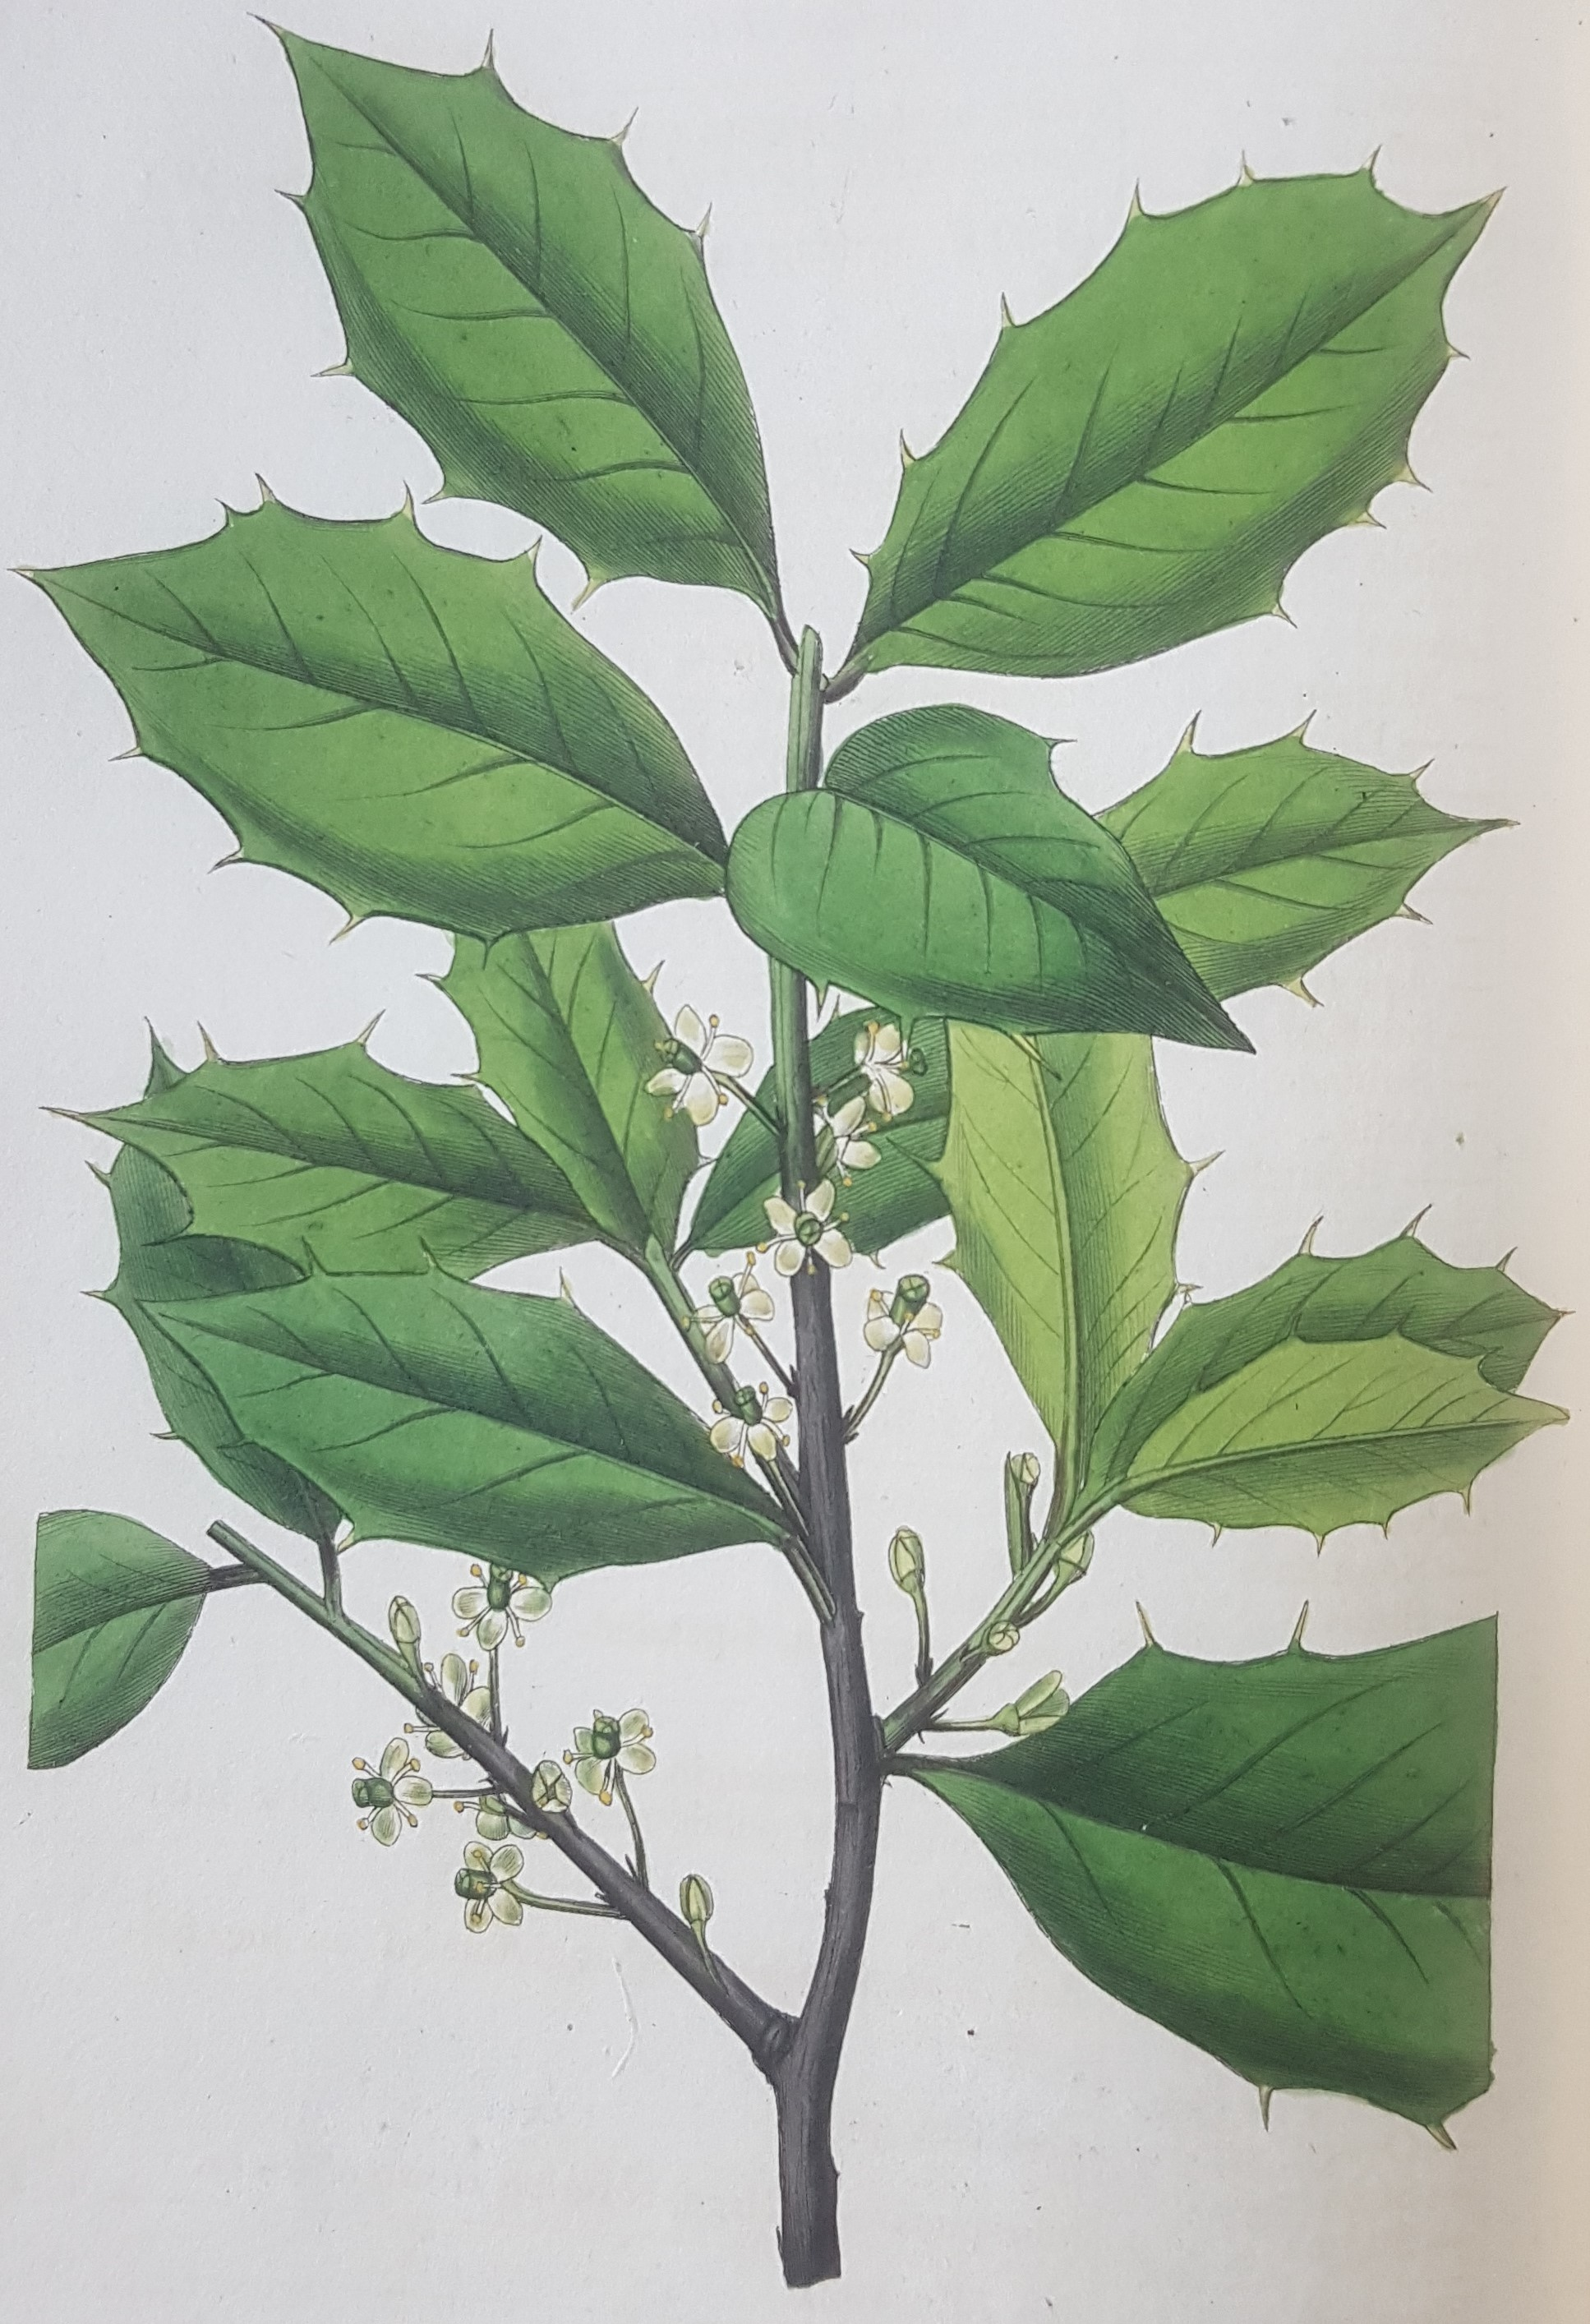 Holly illustration from 'Dendrologia Britannica'.